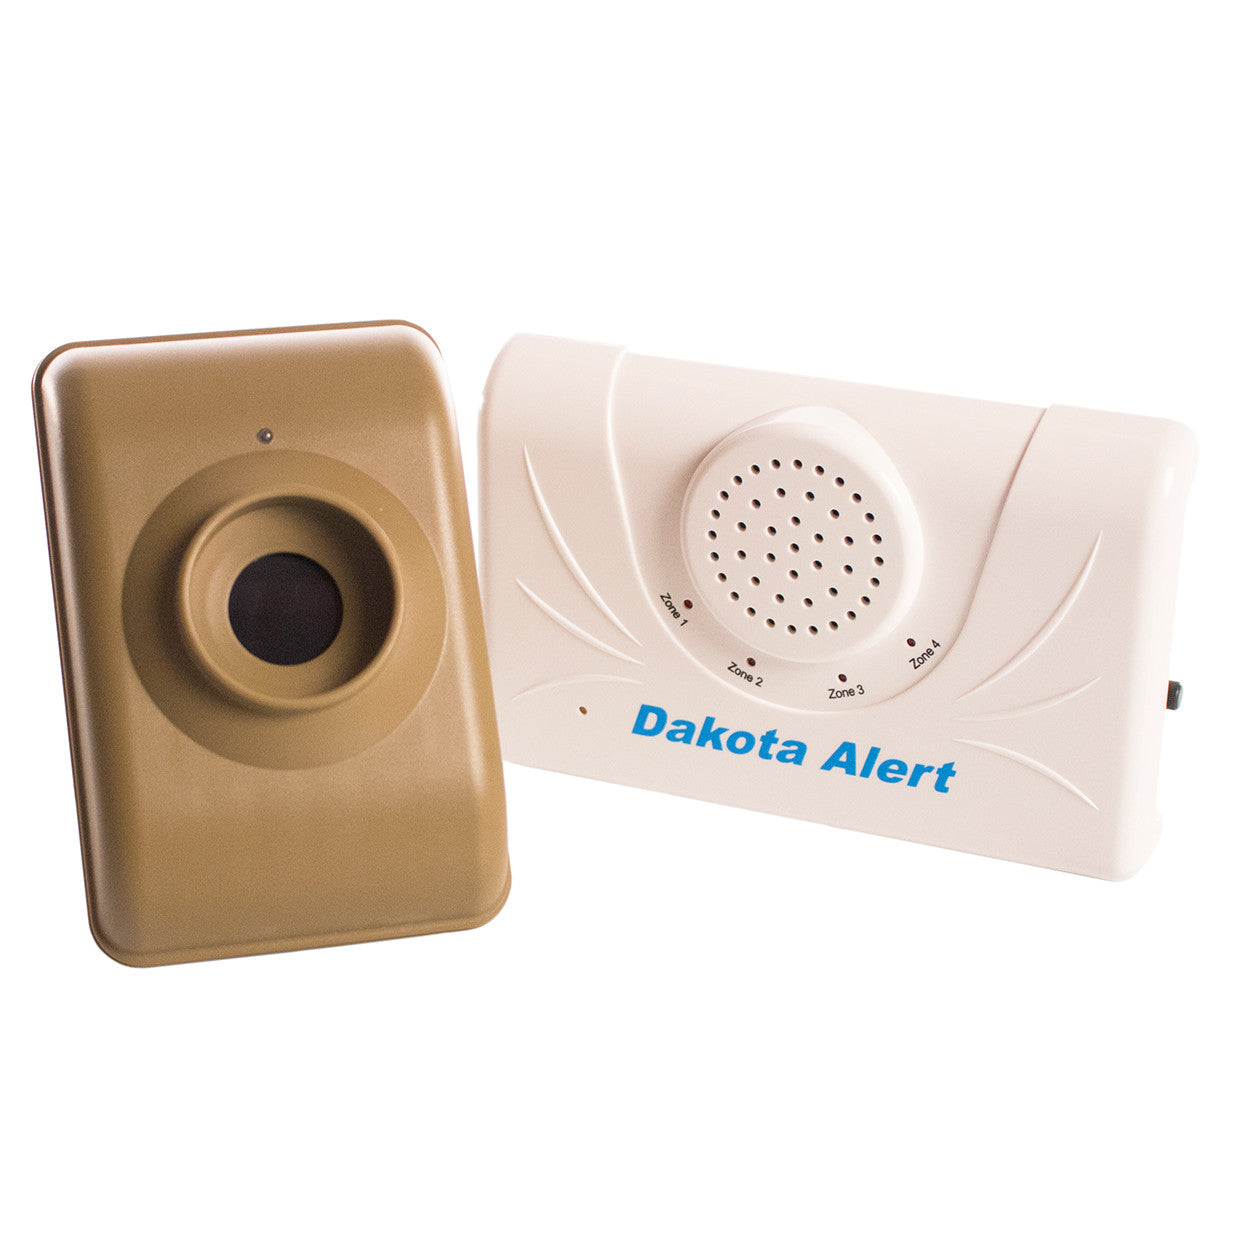 Dakota Alert 2500 - Basic Set Up and Chime/Zone Settings